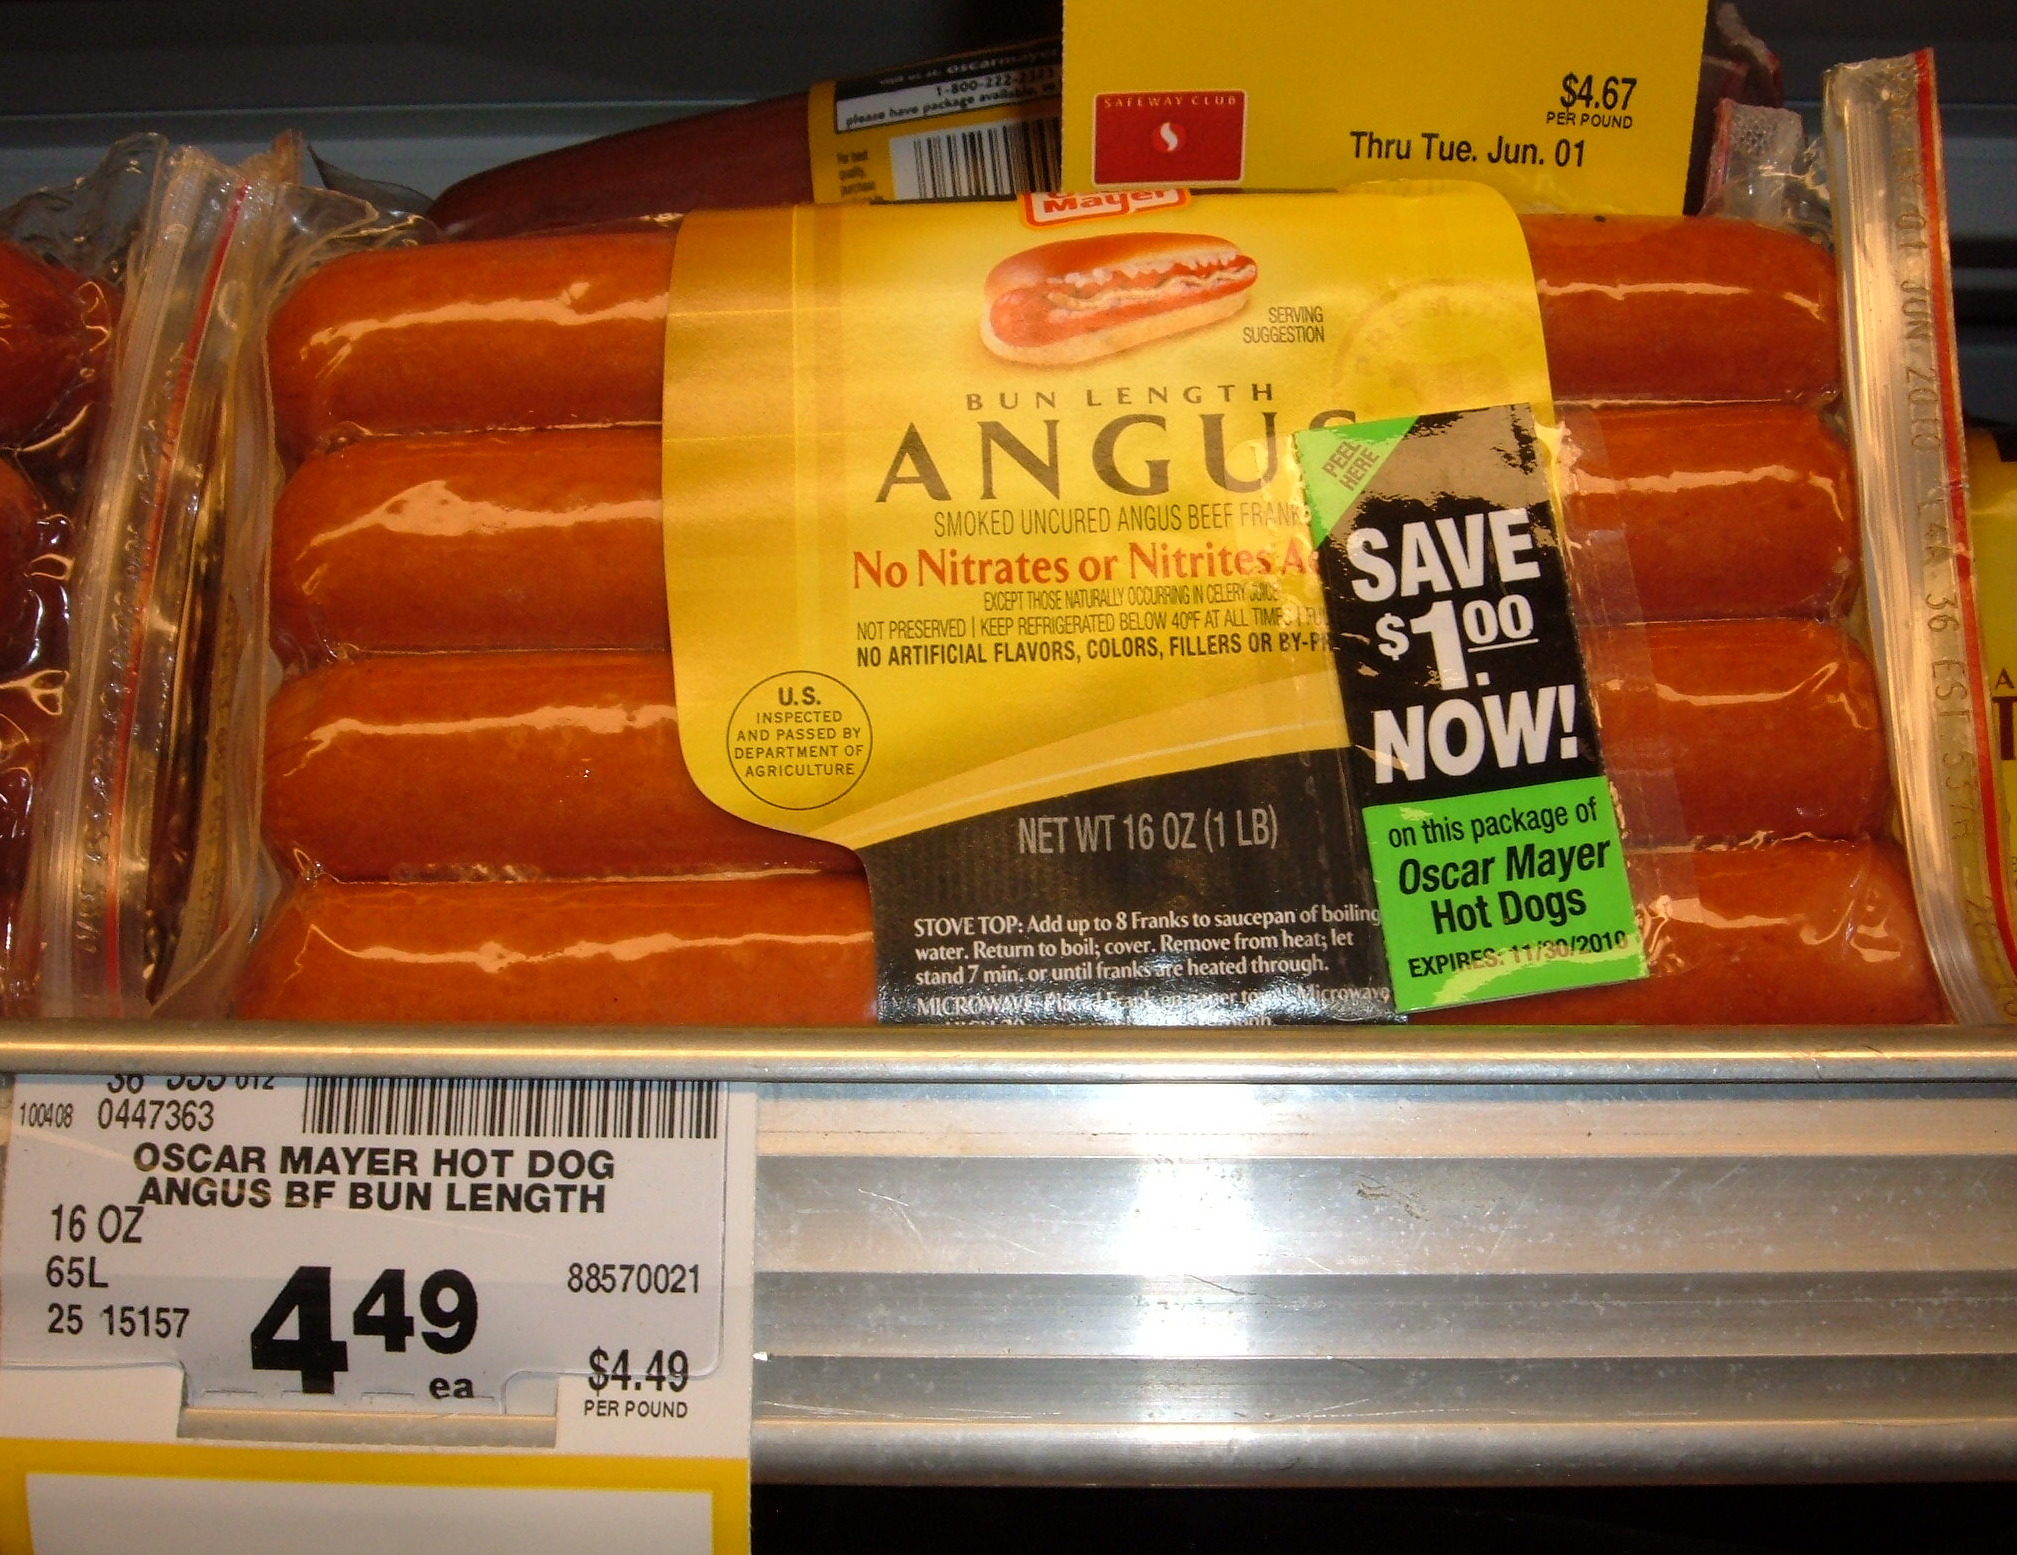 Cheesy Bacon Wrapped Hot Dogs besides Oscar Mayer Selects Angus Beef Franks Bun Length 14 oz furthermore Andy Warhol Celebrity Pop Art as well Oscar Mayer Turkey Hot Dogs in addition Deli. on oscar mayer bun length